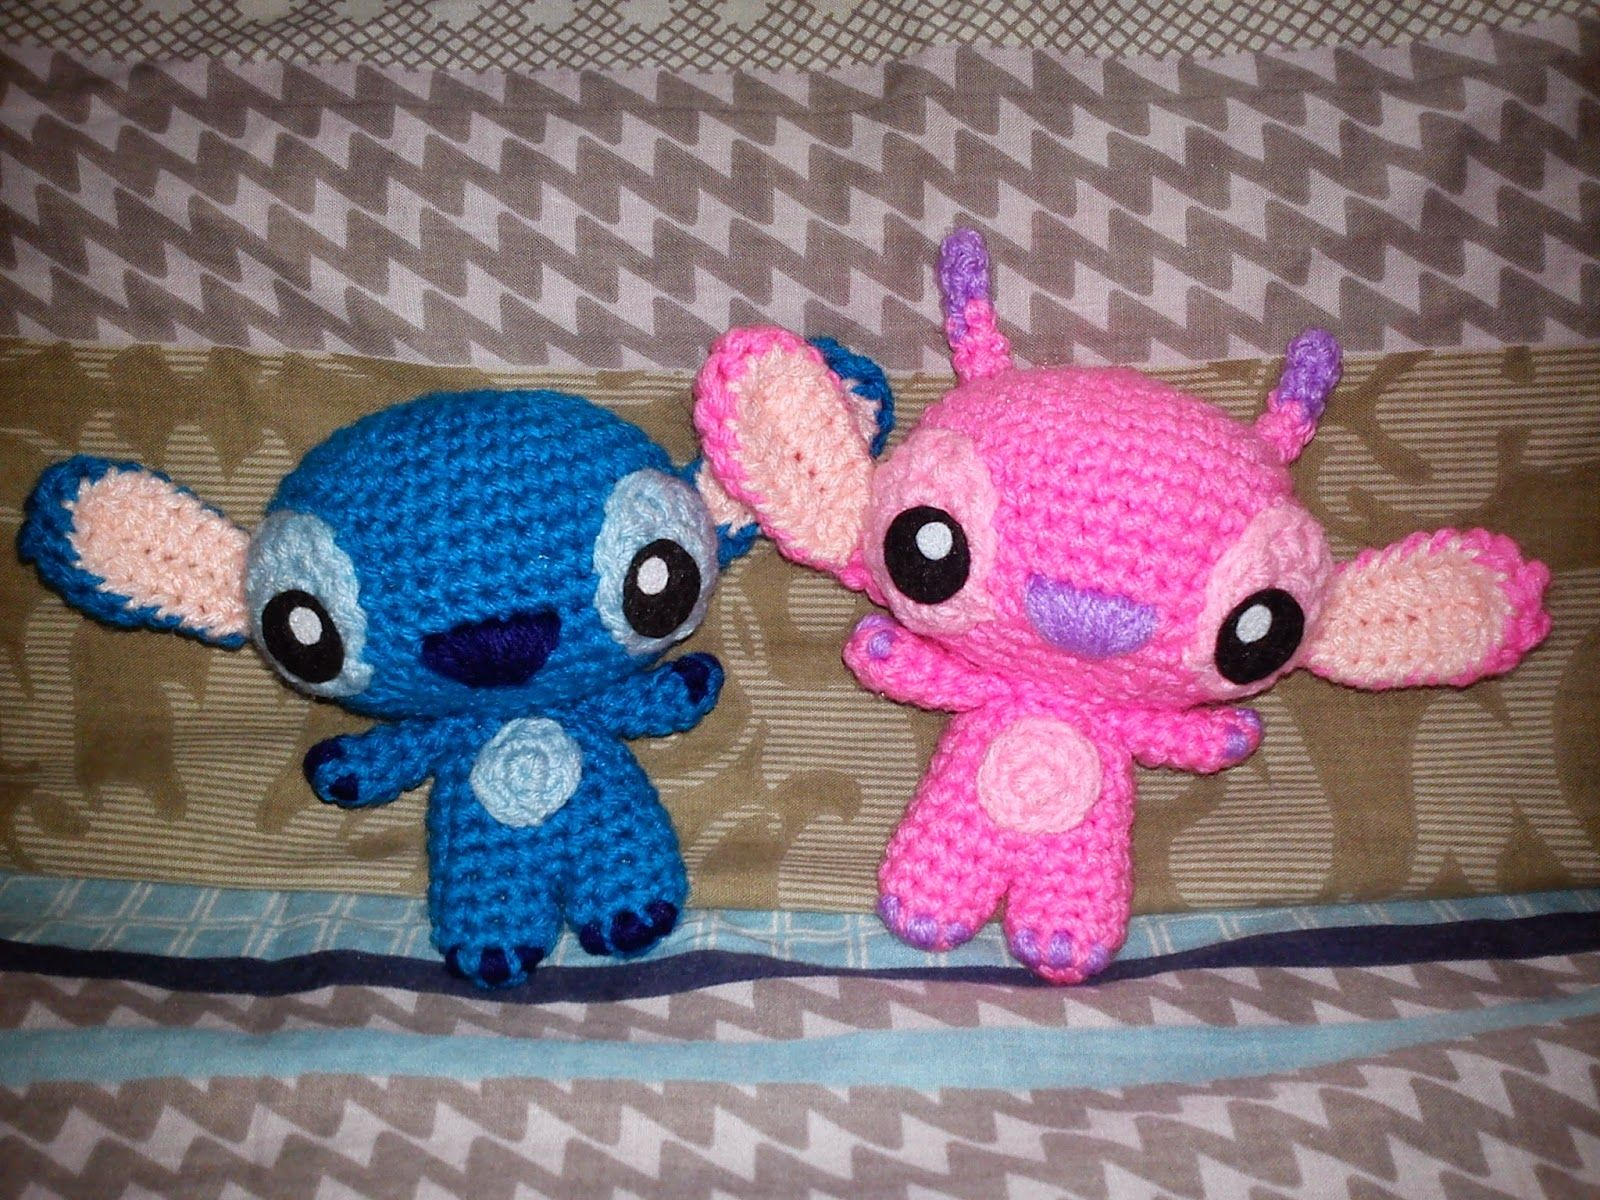 Amigurumi Tutorial Disney : How to crochet amigurumi versions of stitch and angel from lilo